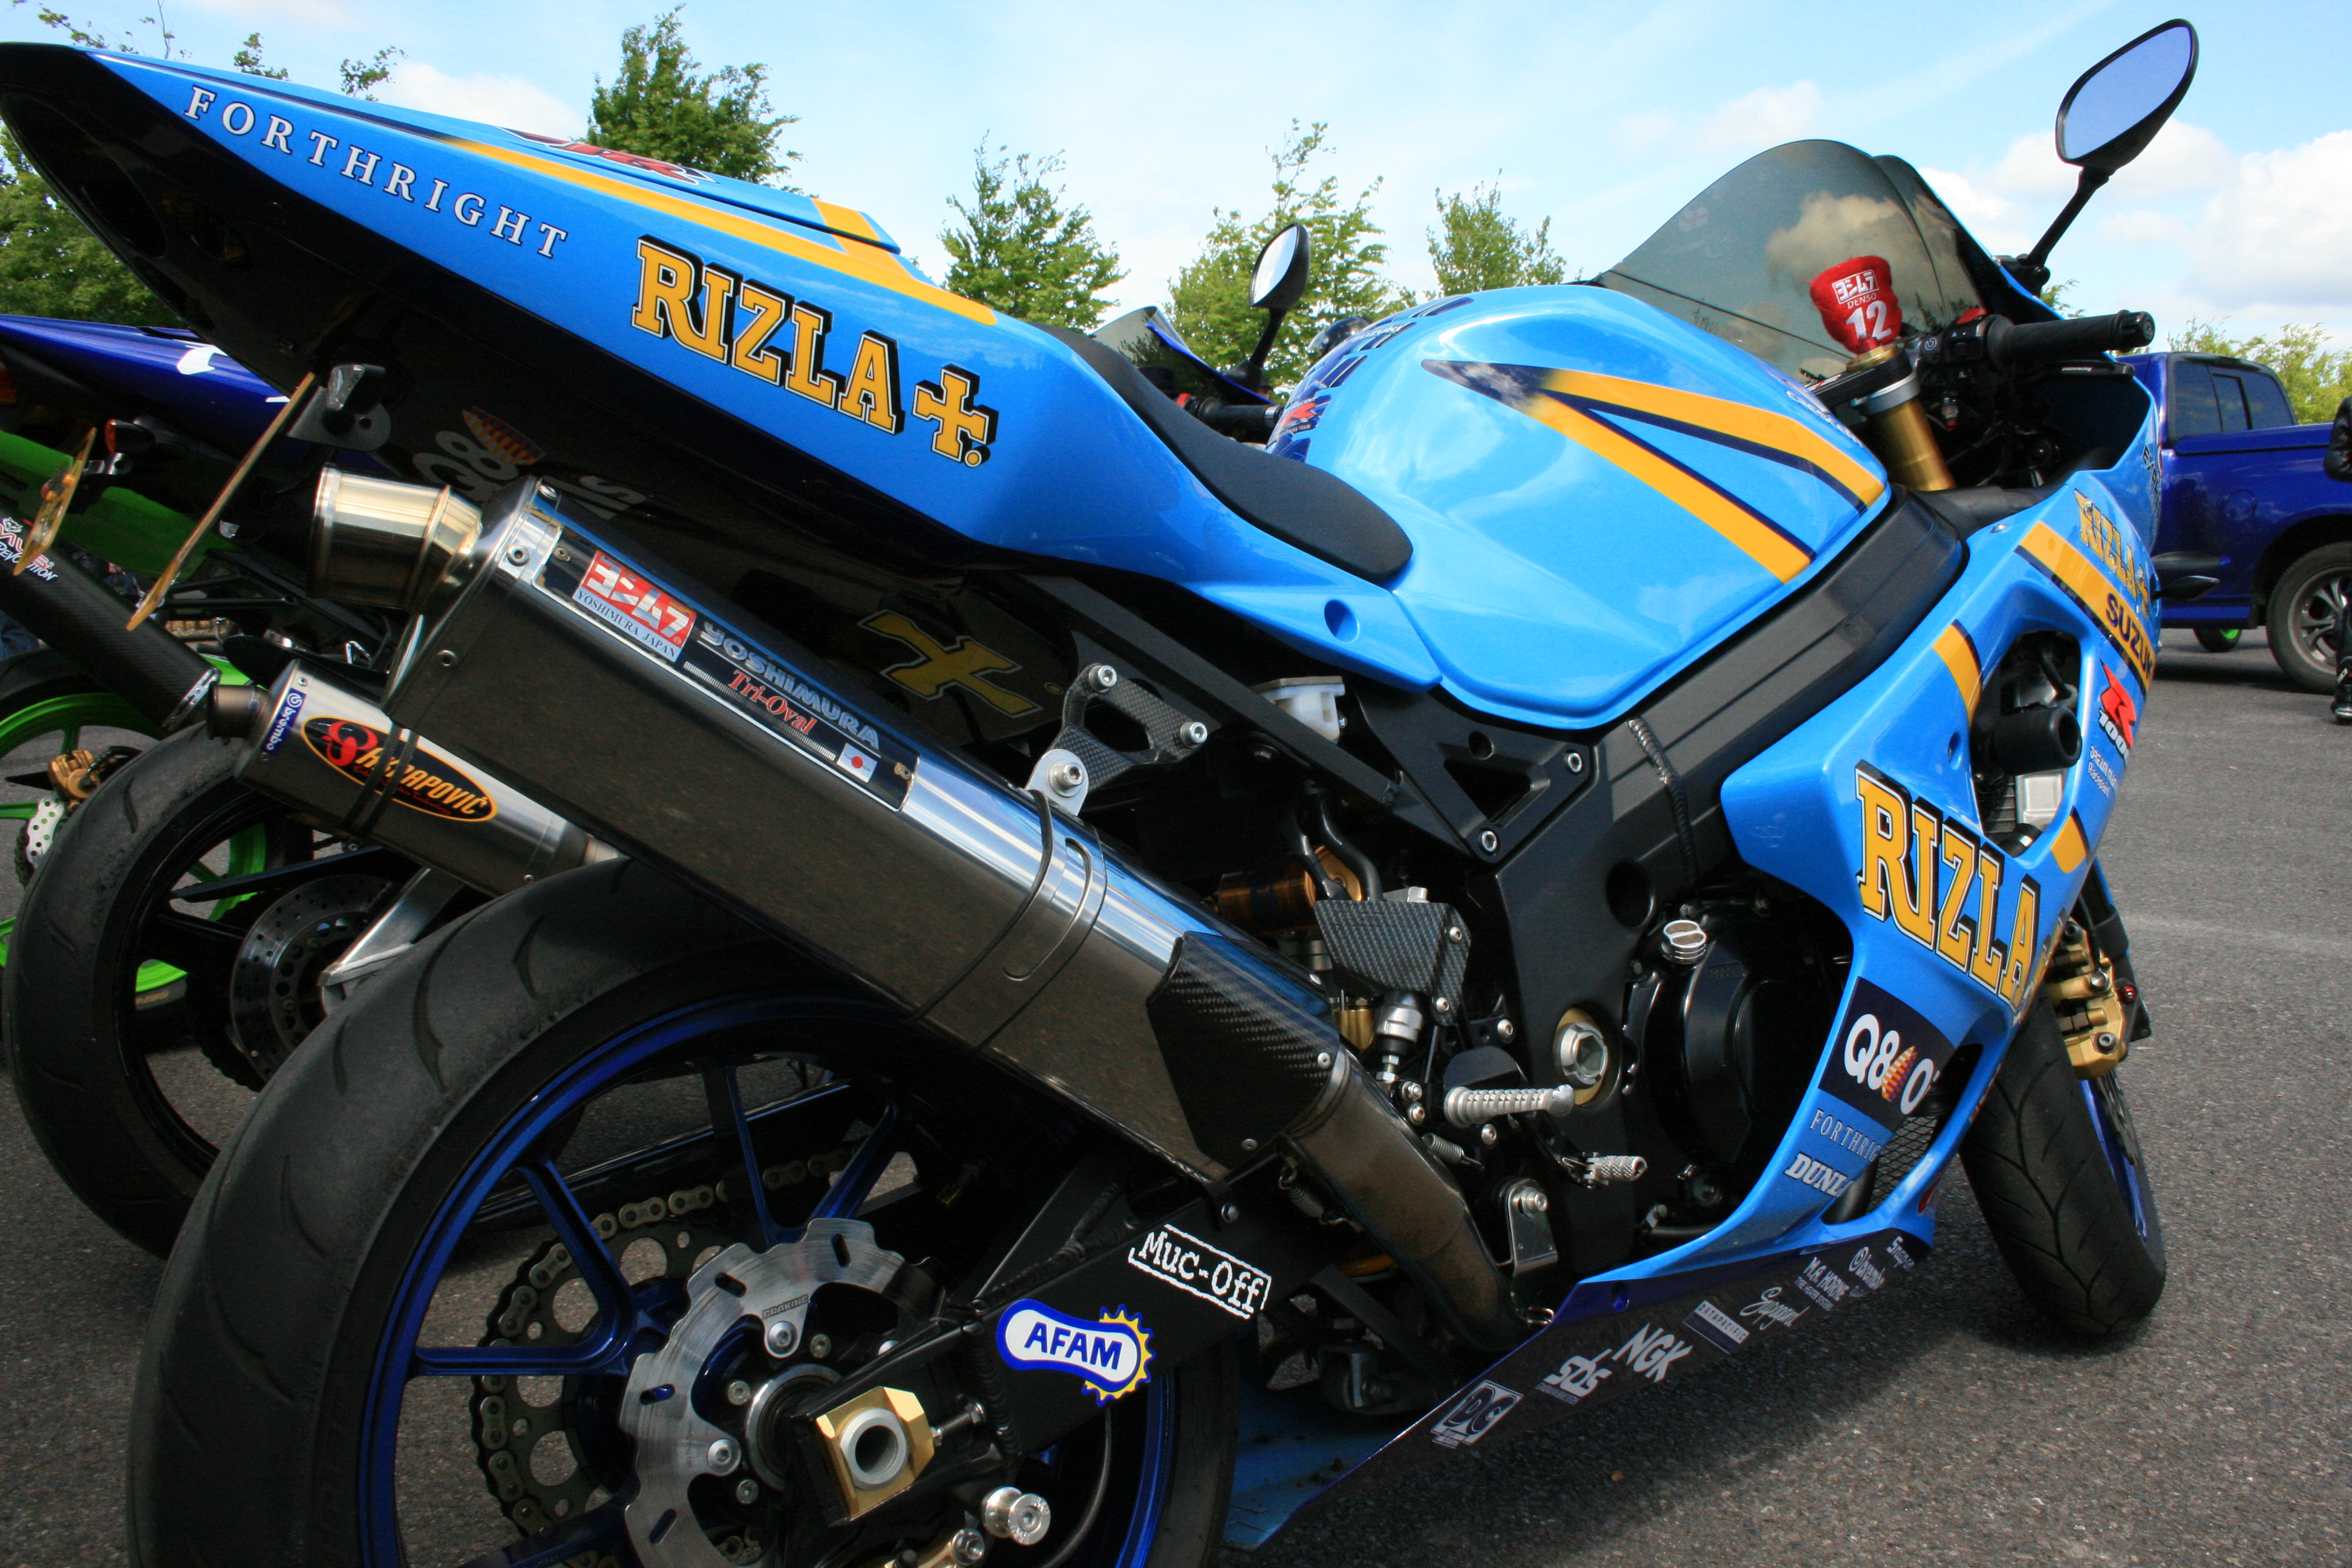 Beautiful rizla suzuki gsxr1000   flickr   supermac1961